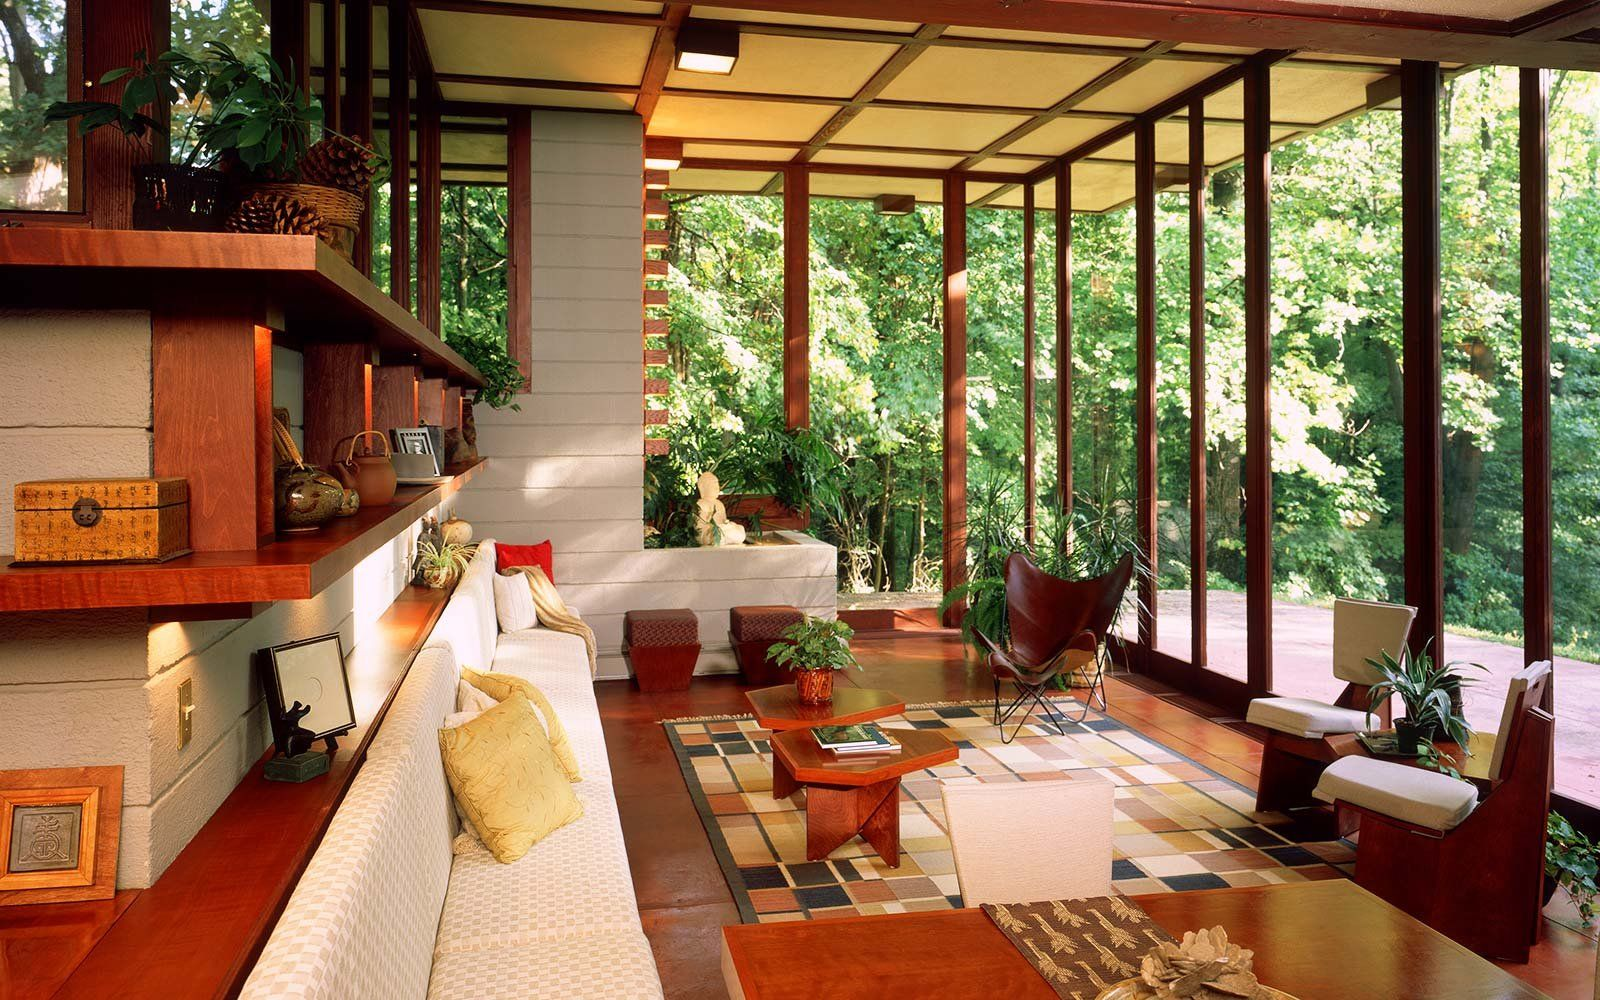 Photo of 10 Must-See Houses Designed by Architect Frank Lloyd Wright